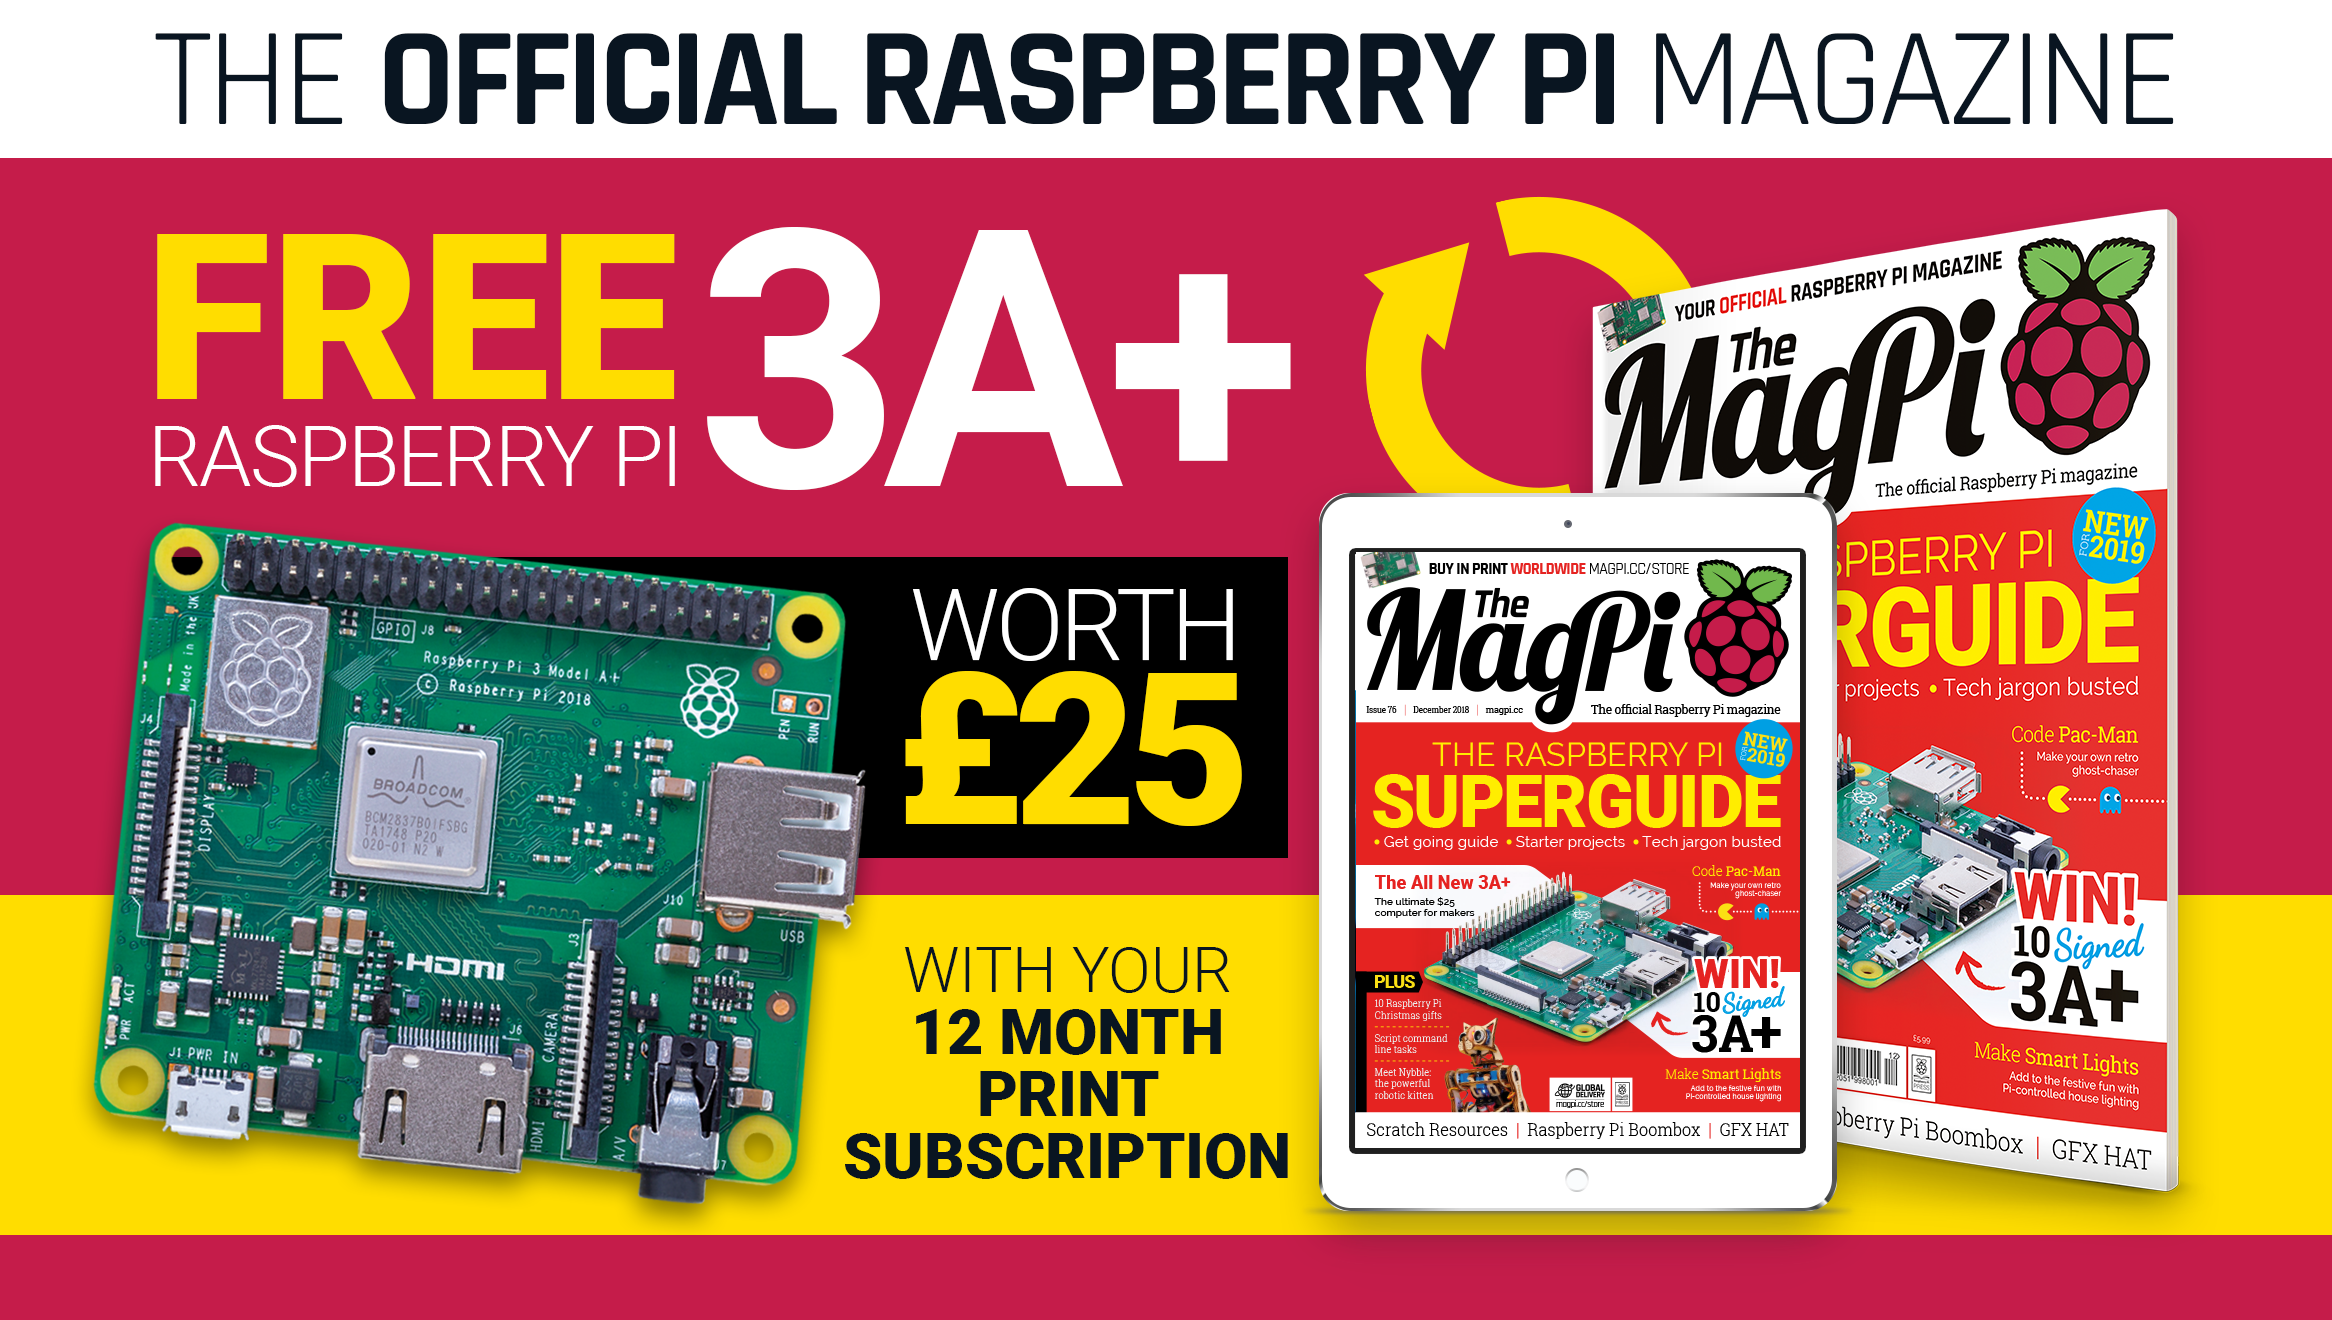 Free Raspberry Pi 3A+ with 12-month subscription